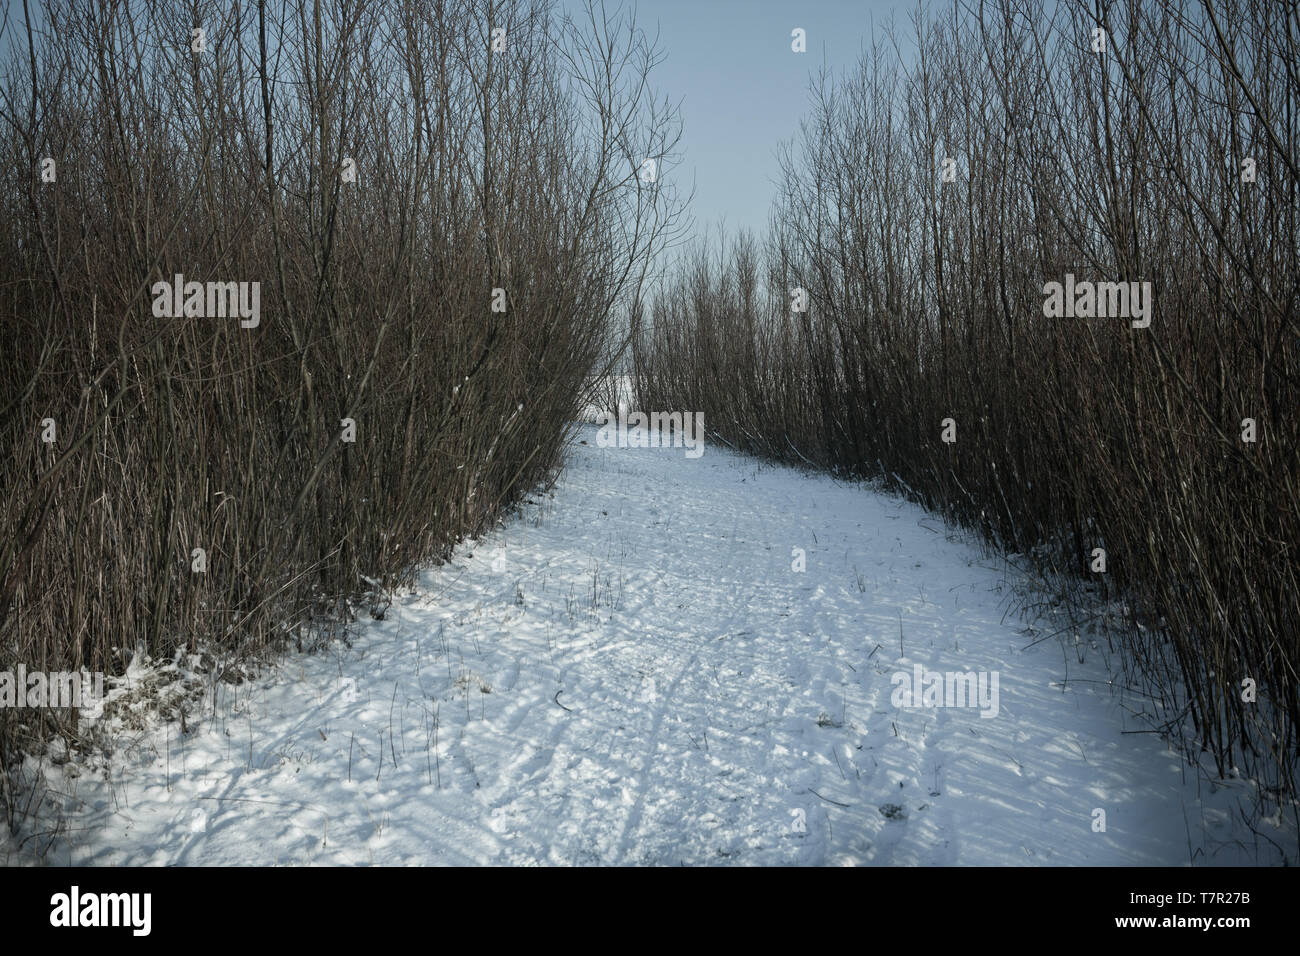 Snowy path amidst some bushes. - Stock Image